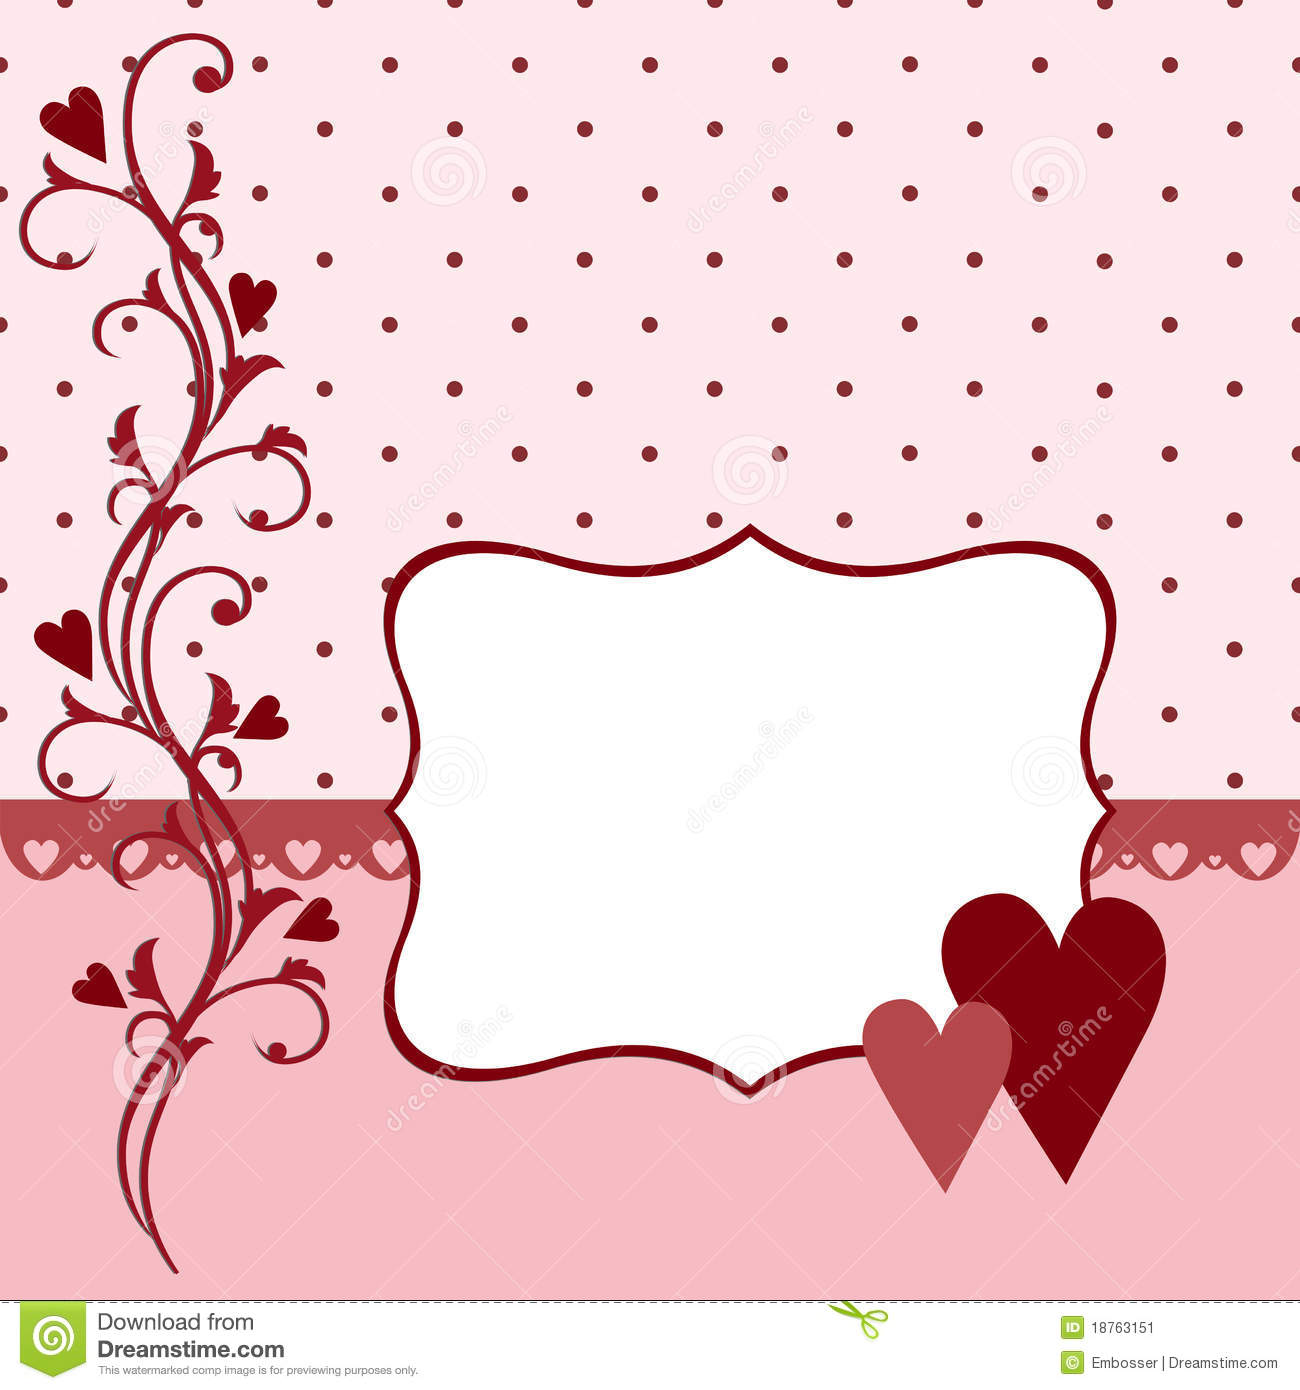 Template for valentine or wedding greetings card stock illustration download comp m4hsunfo